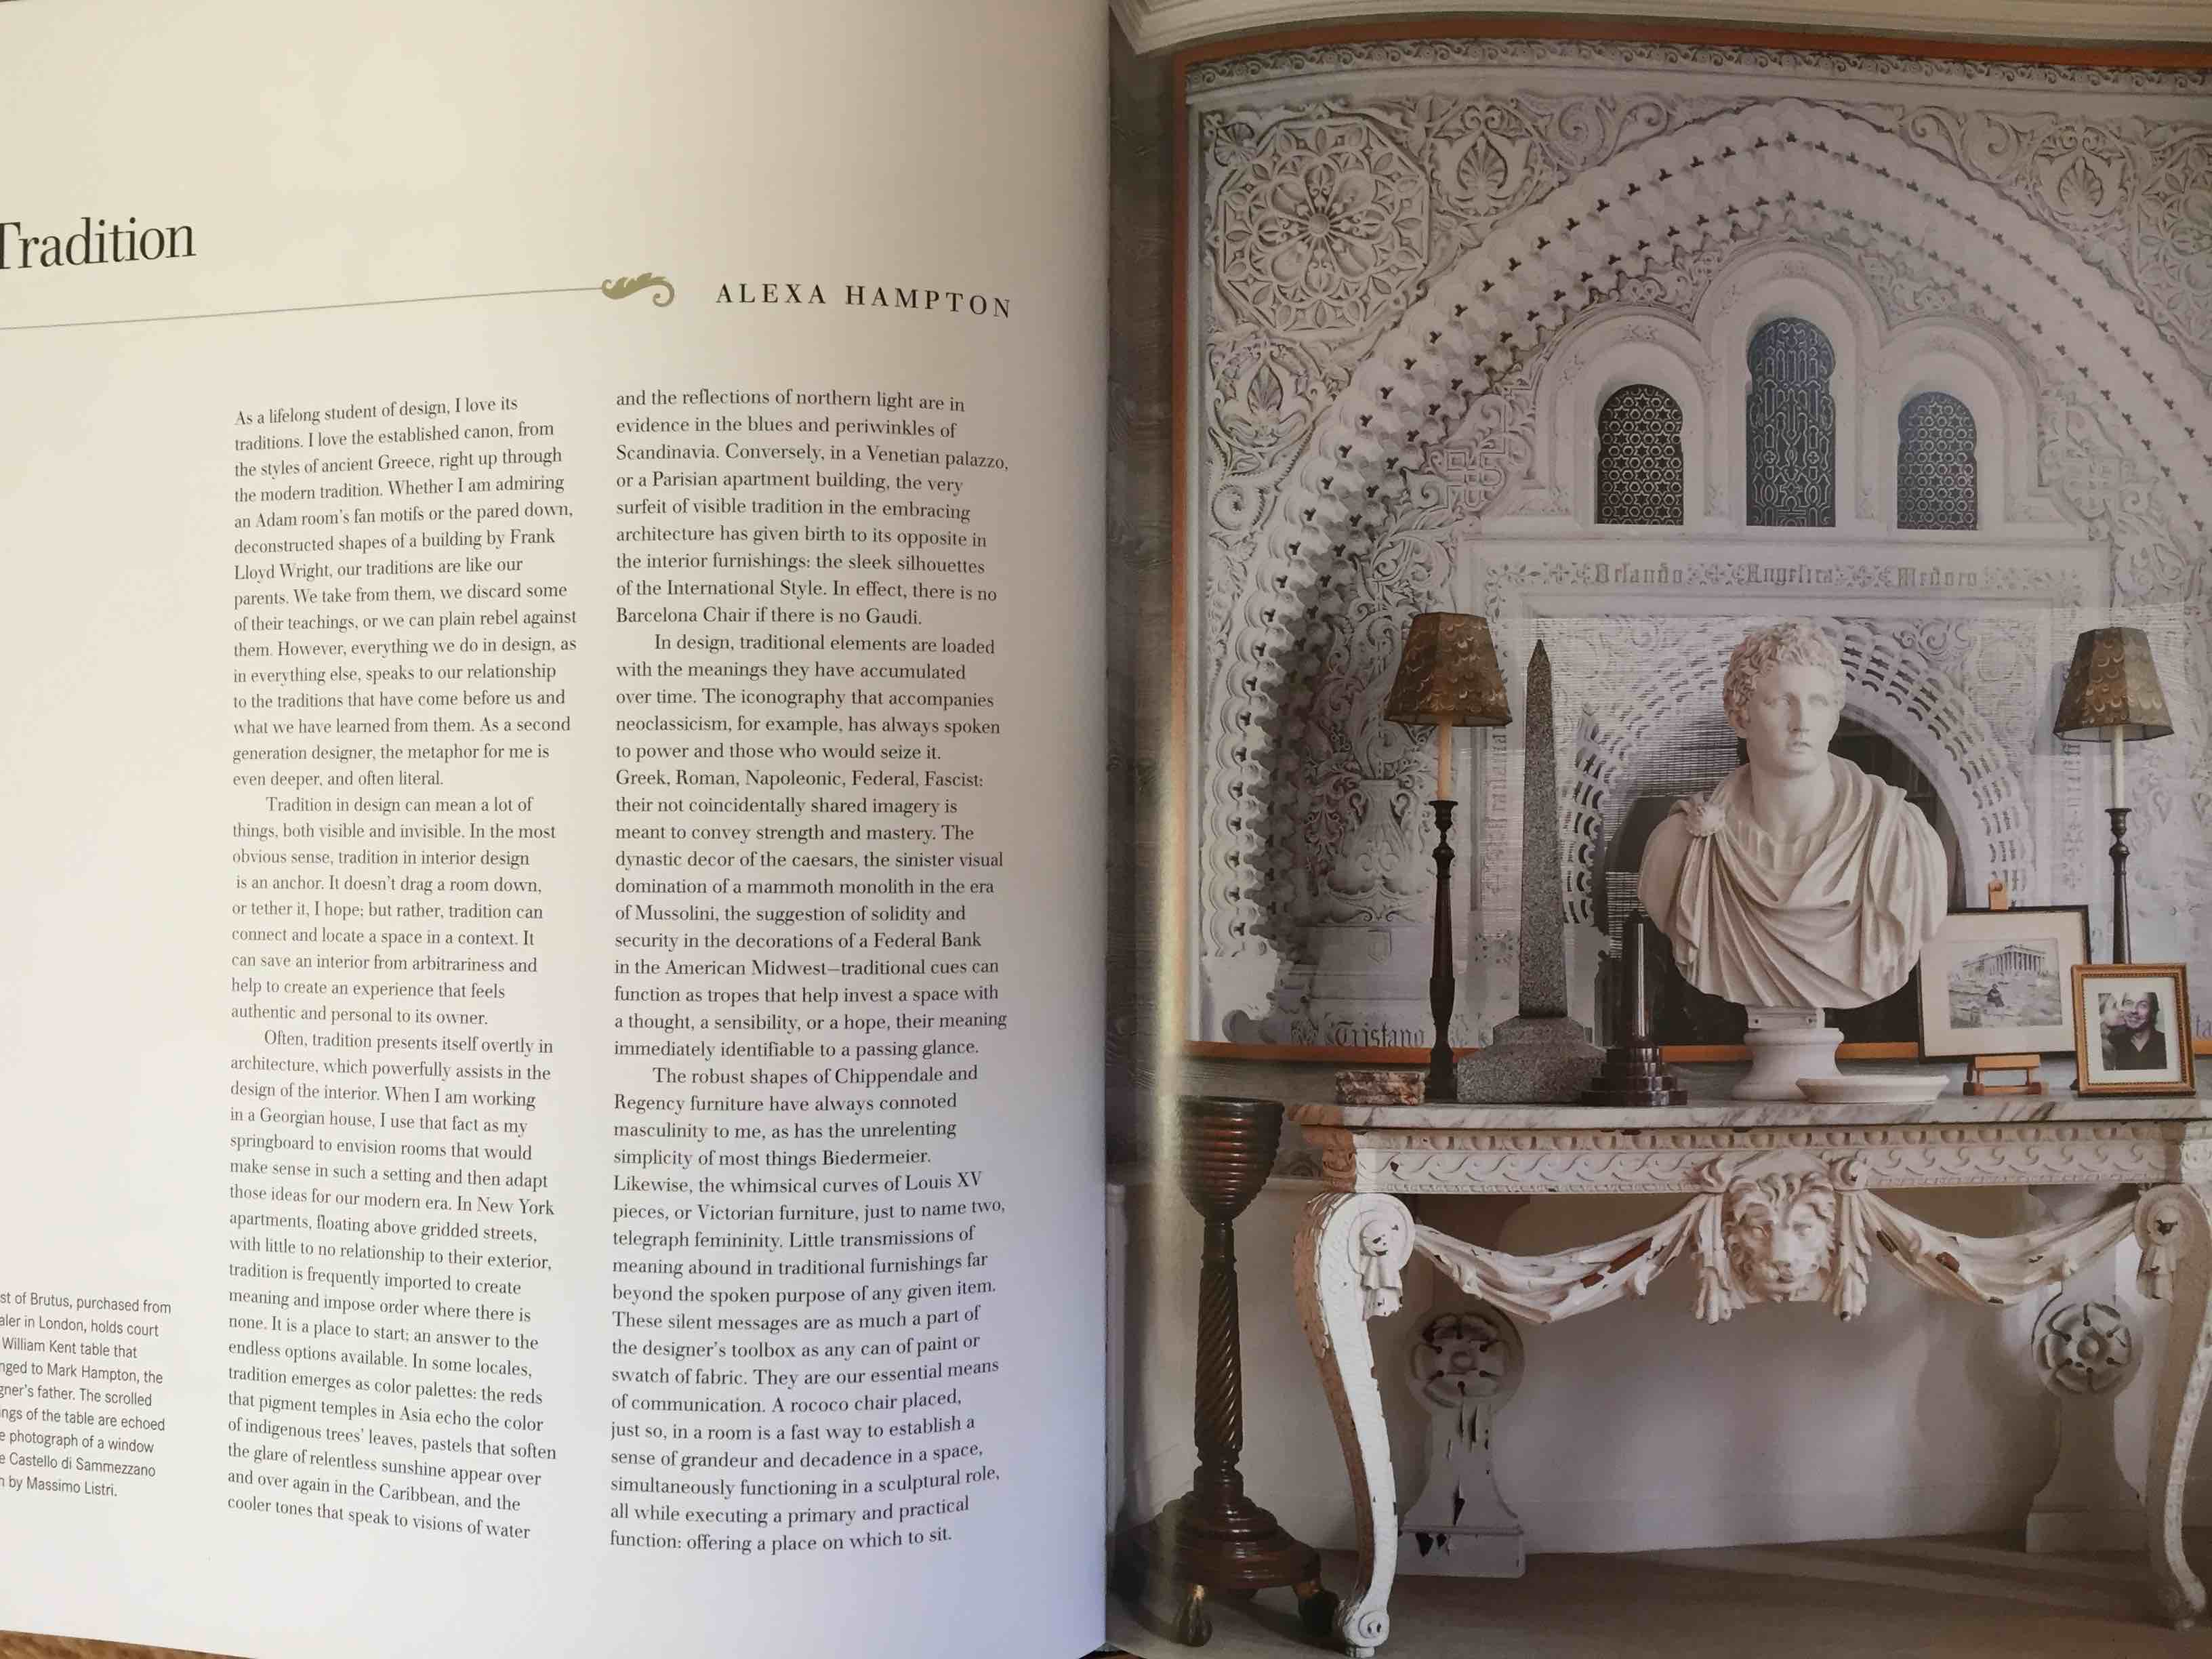 Interior-design-masterclass-carl-dellatore-books-tradition